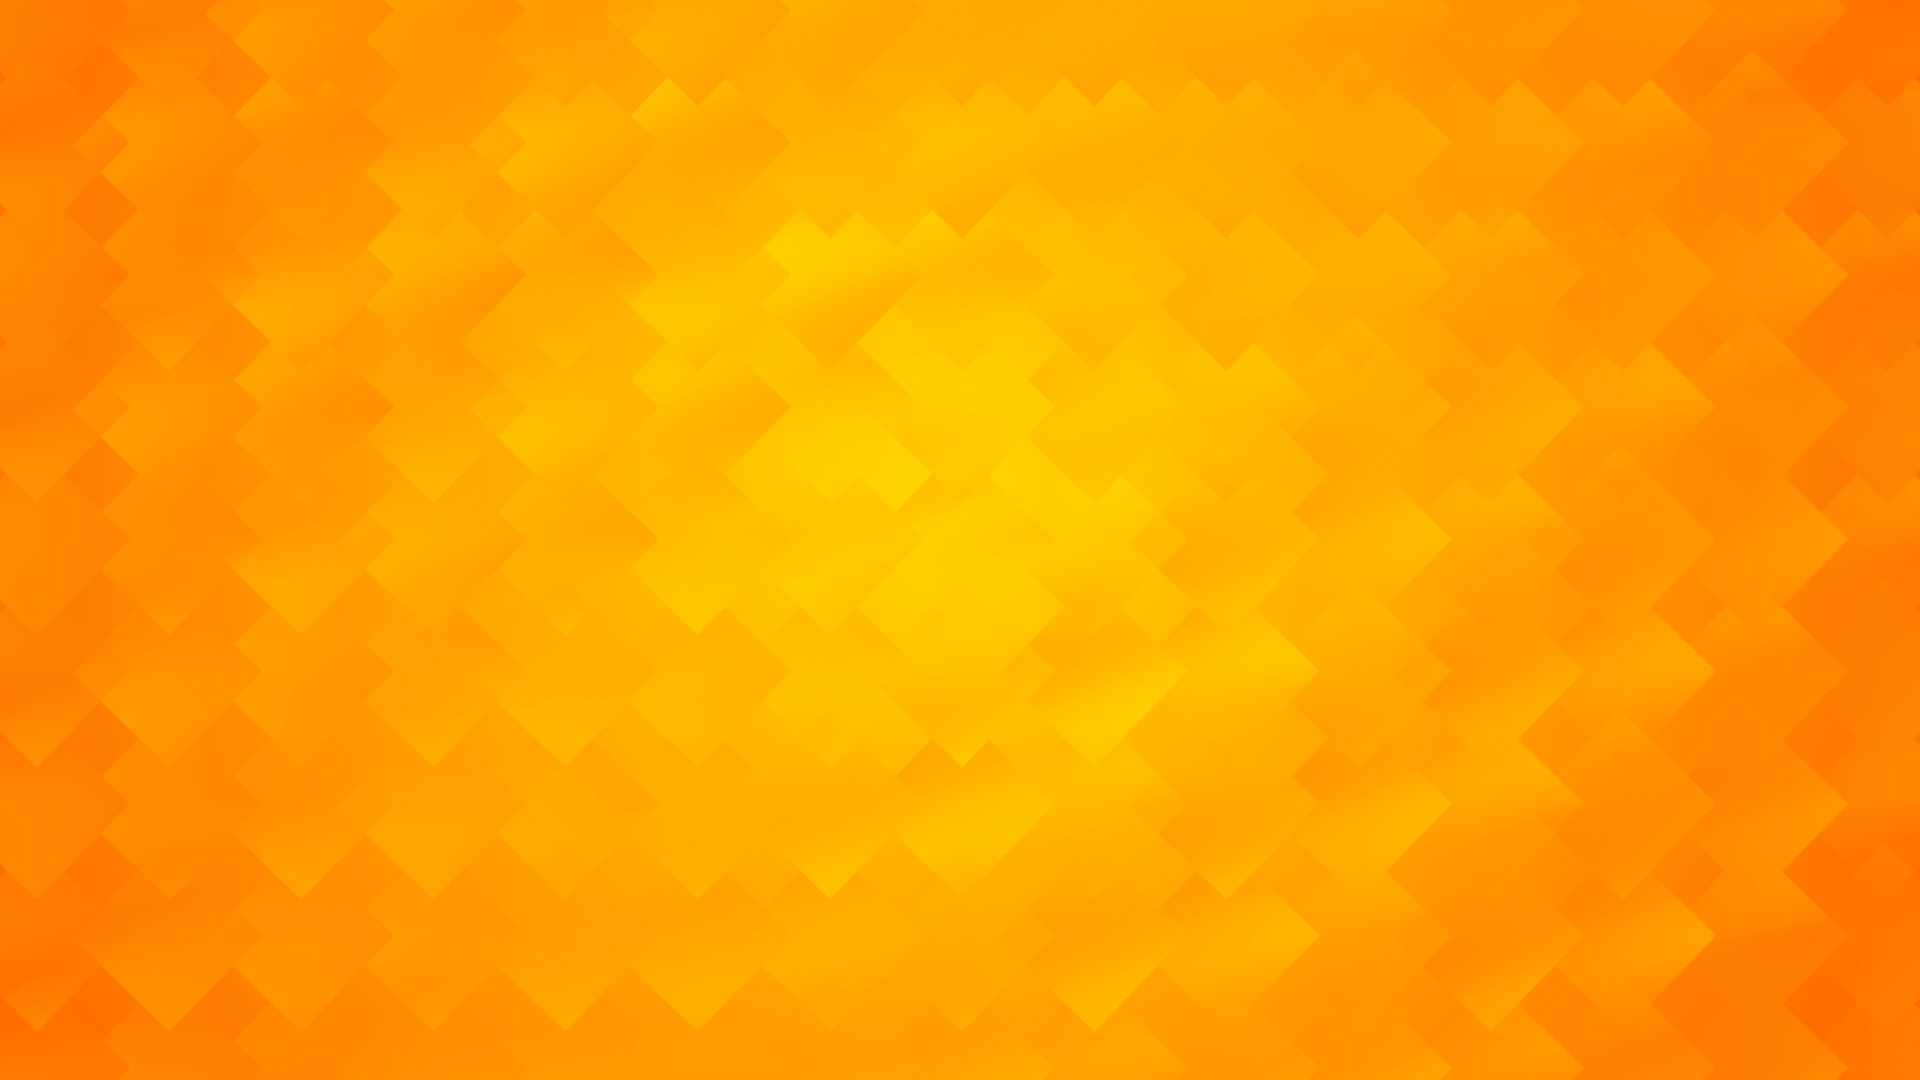 Neon Orange Abstract Backgrounds